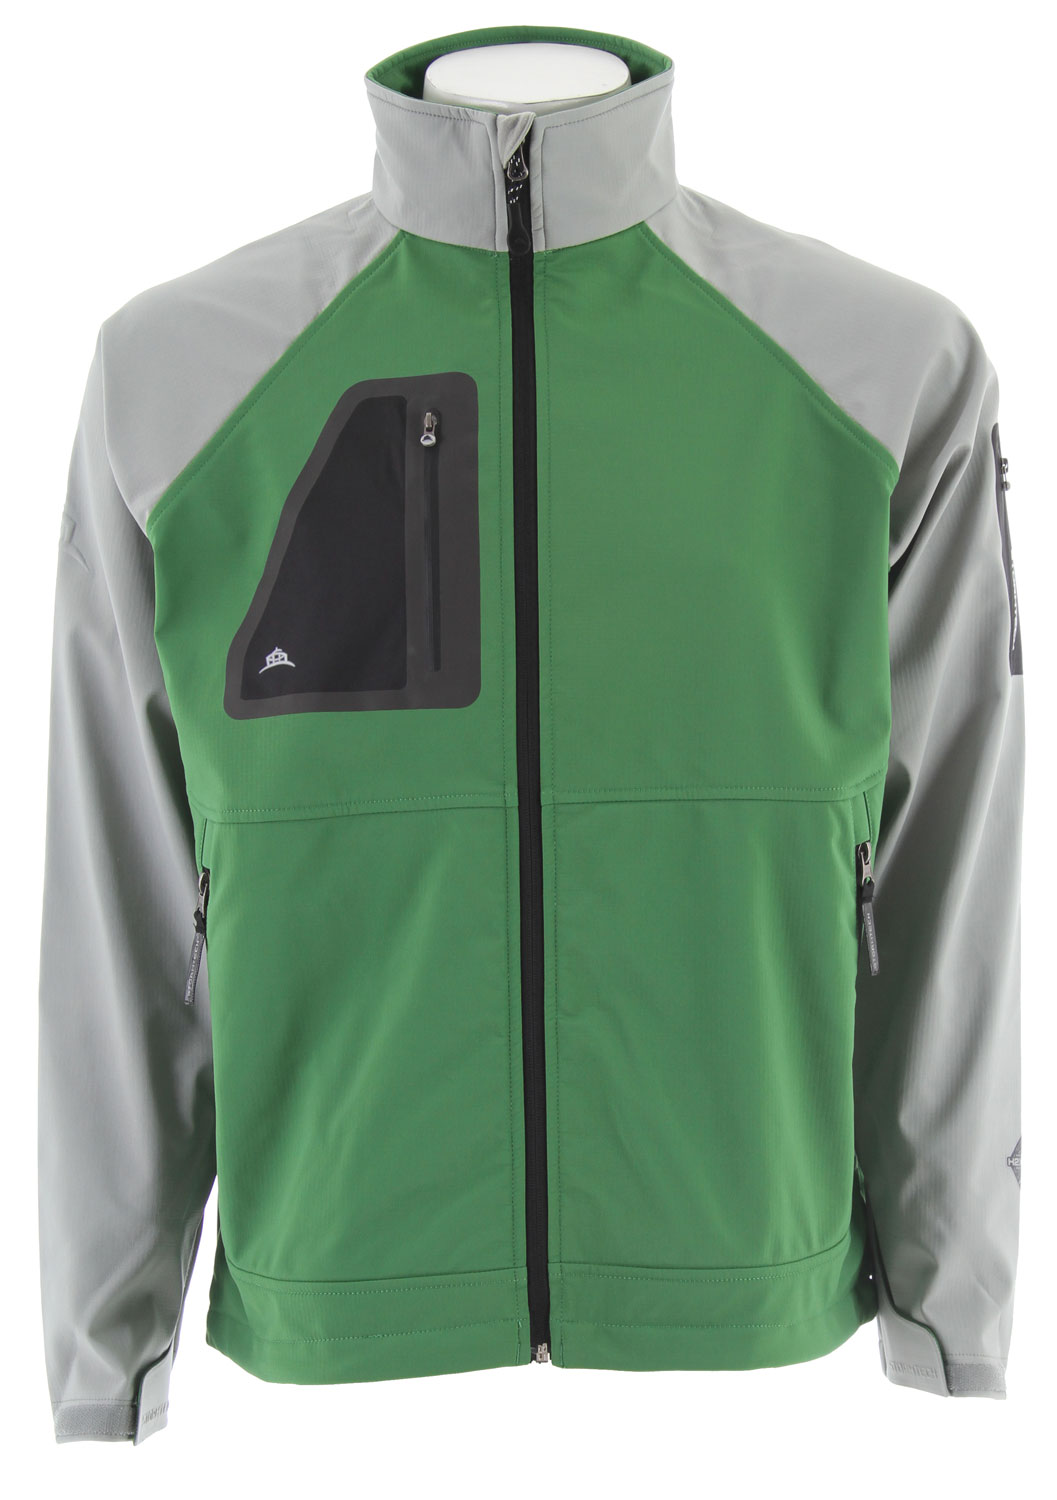 If highly aerobic three season activities are what keep you going, a softshell that is waterproof, breathable, and slightly stretchy is crucial for optimum comfort. The Aeros H2extreme Shell can be worn alone for a weatherproof barrier or layered during the thick of the season.Key Features for the Stormtech Aeros H2xtreme Shell Jacket: 8,000mm Waterproof 5,000g Breathability Embossed Logo Detailing on Right Sleeve Waterproof Chest and Bicep Pocket Chest Pocket with Audio Port - $61.95